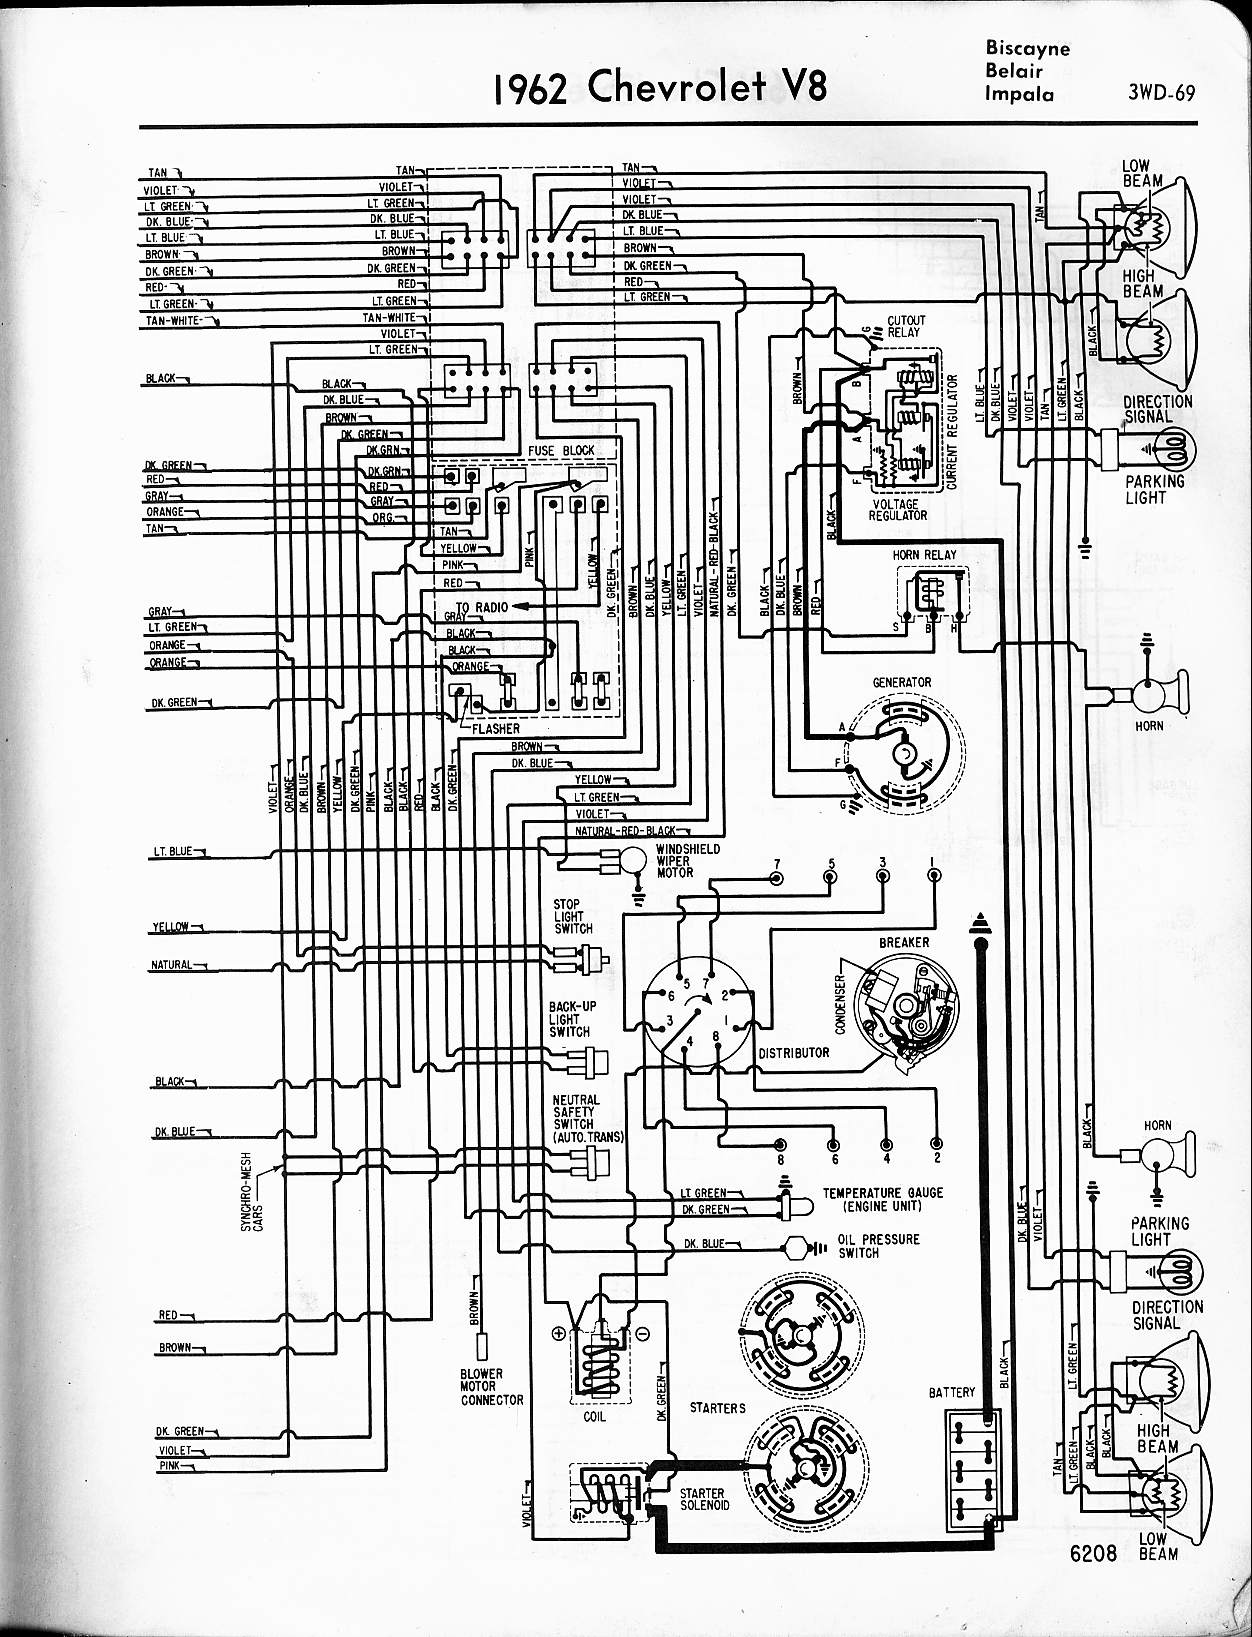 C4 Fuse Box Diagram As Well As 1970 Chevelle Ss Also C6 Corvette Fuse